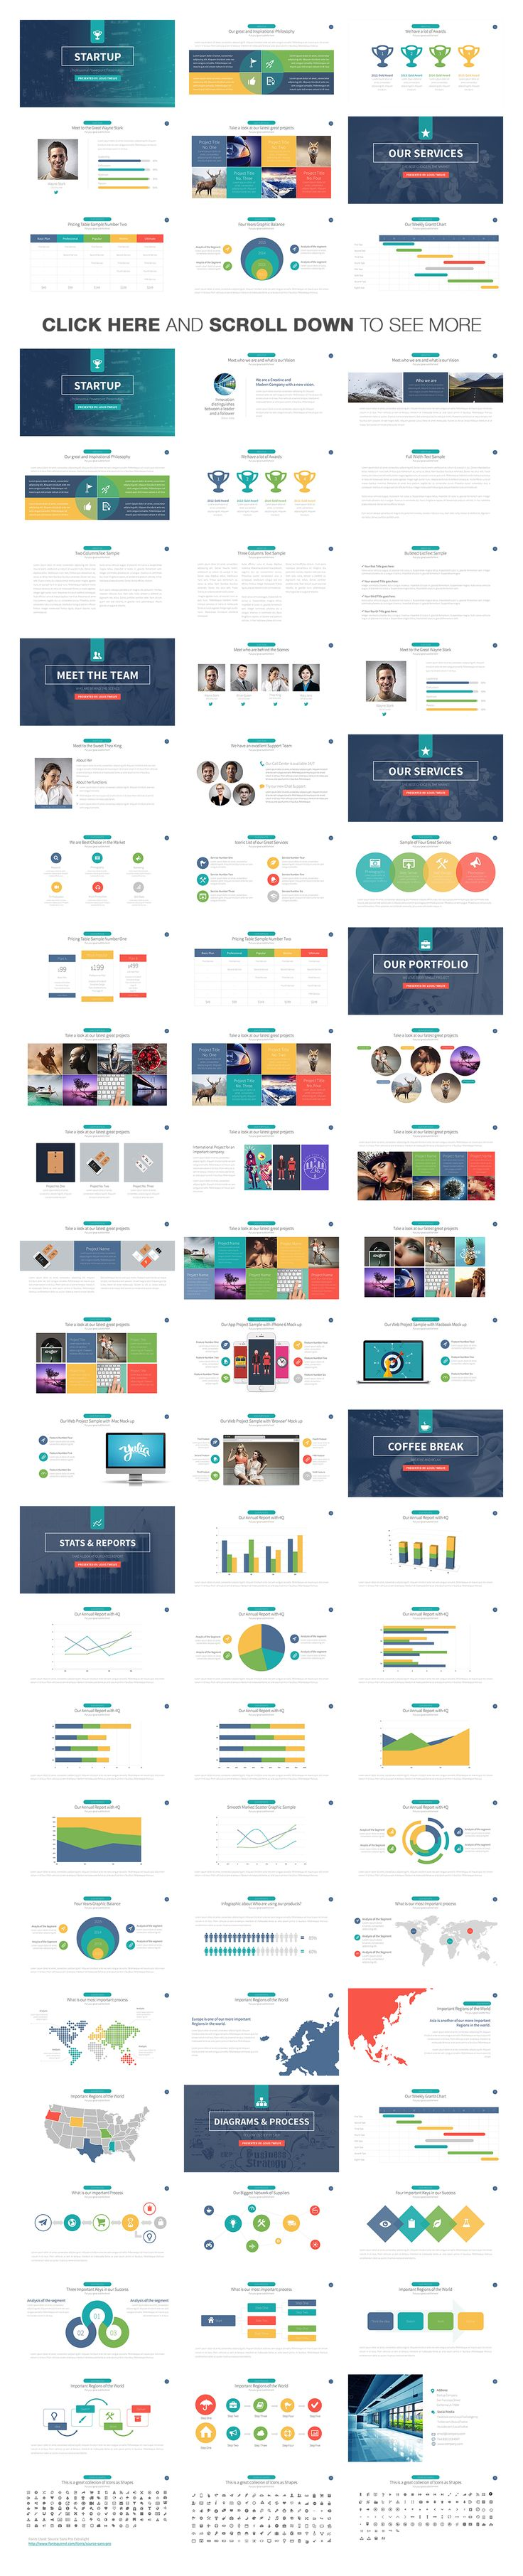 Startup Business Keynote Template by Slidedizer on @creativemarket